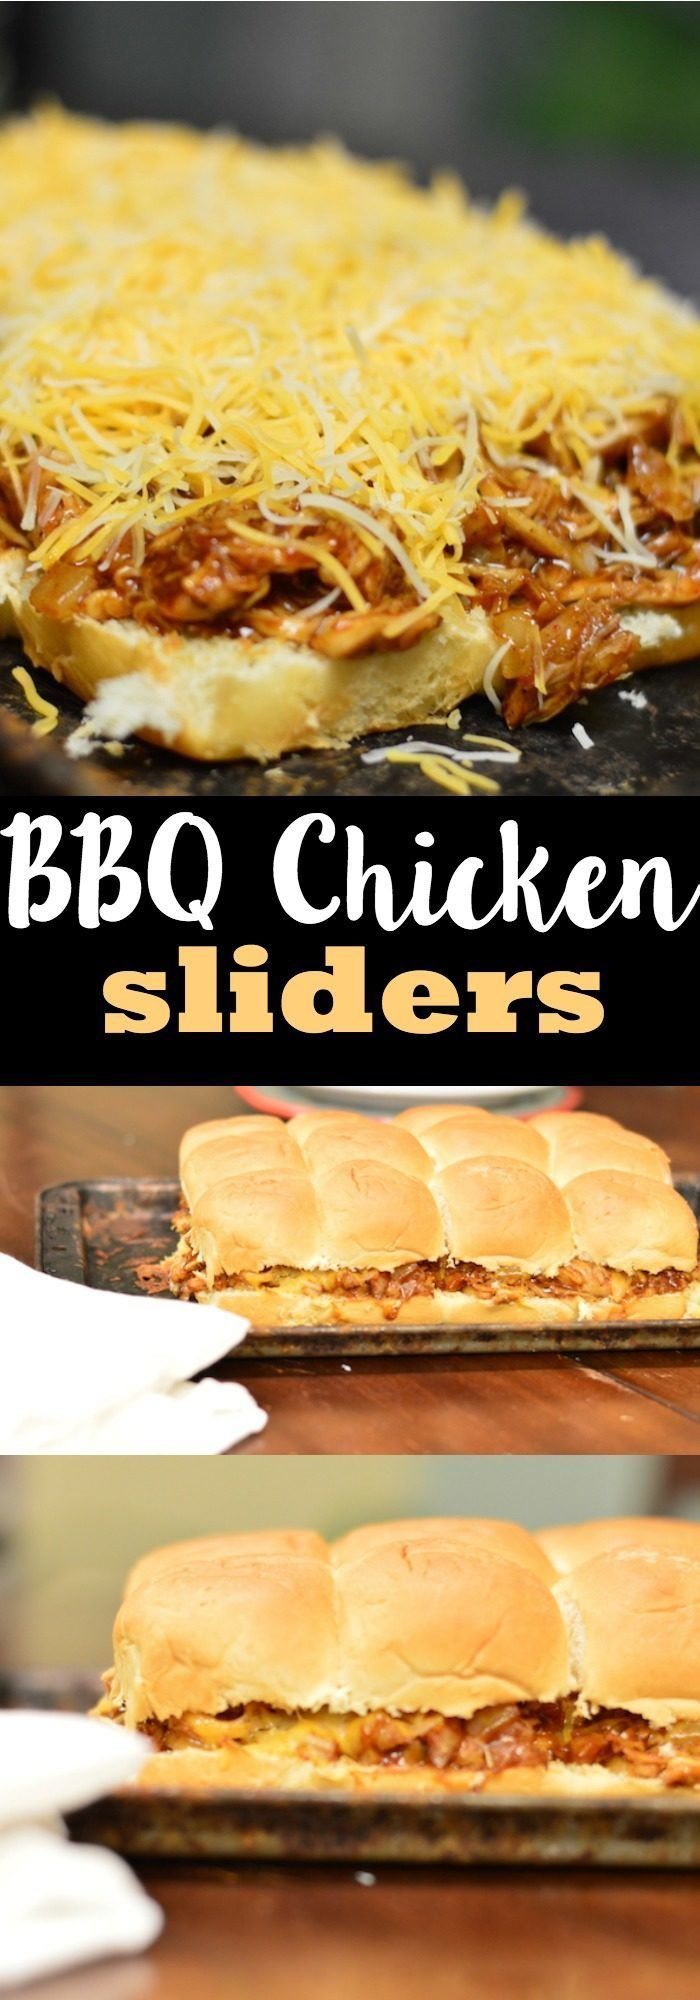 BBQ Chicken Sliders with Cheese on Hawaiian Rolls. The perfect appetizer, party favor, or quick weeknight dinner.